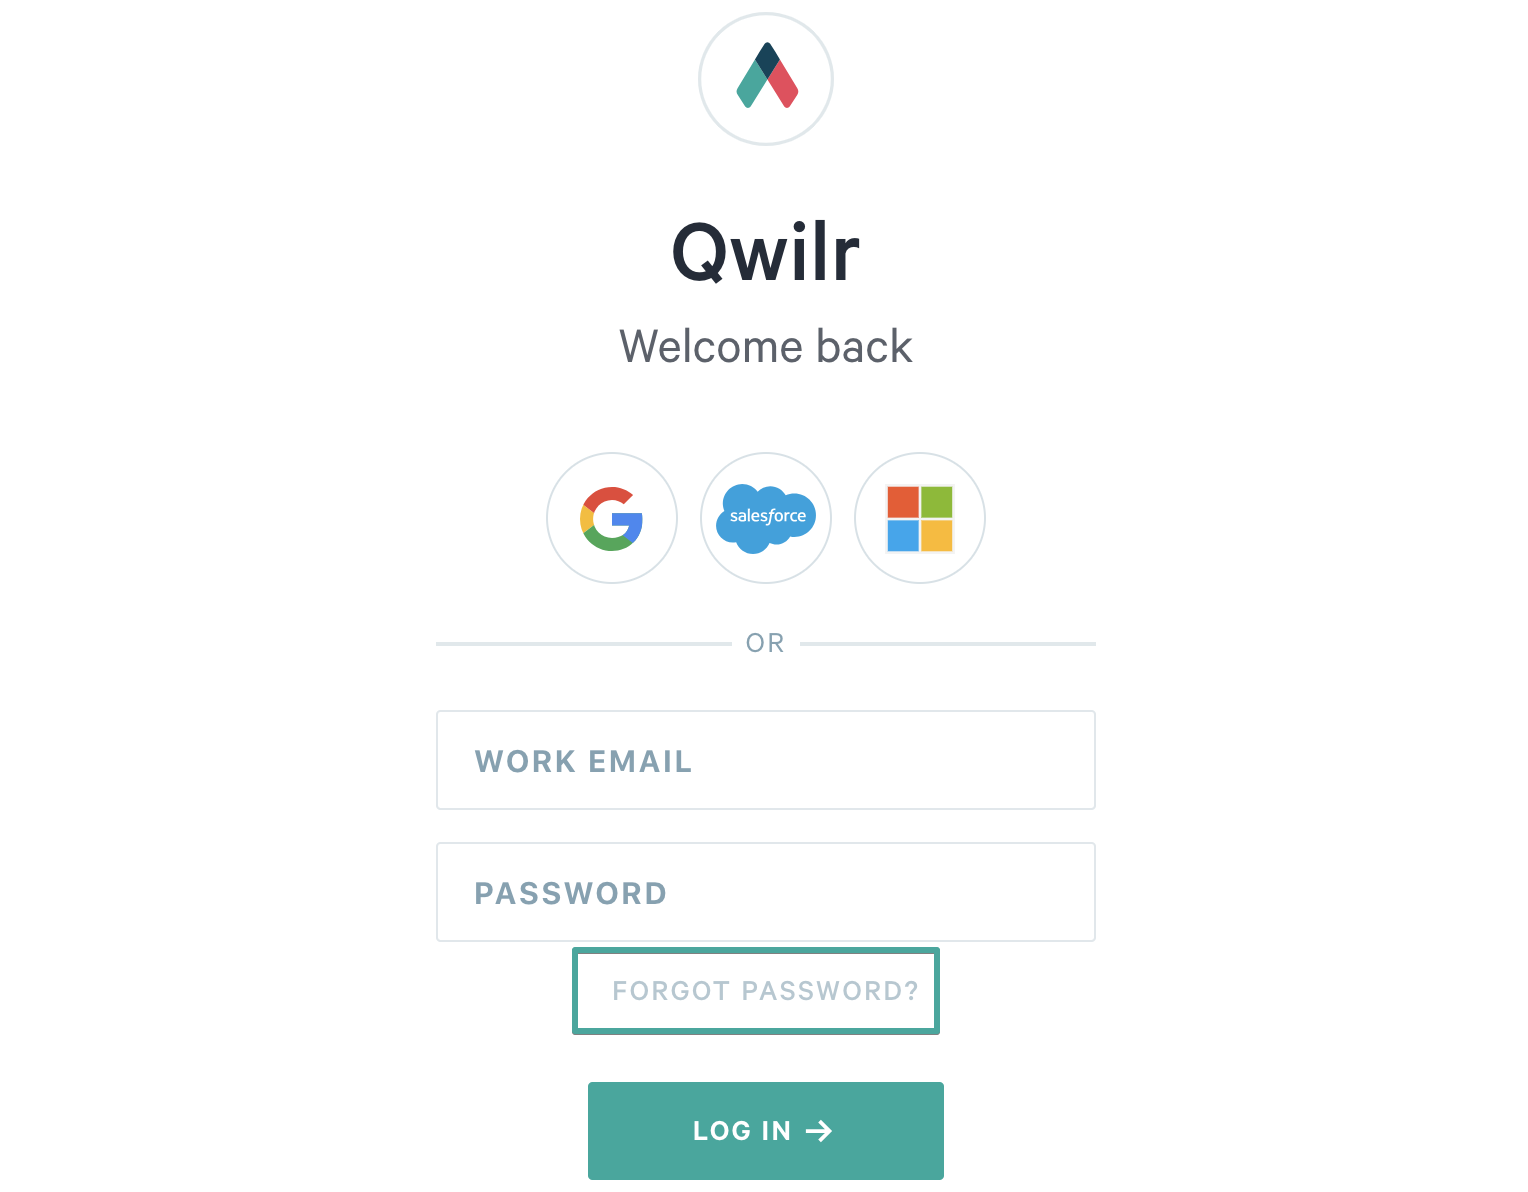 Resetting your password - Qwilr Help Center